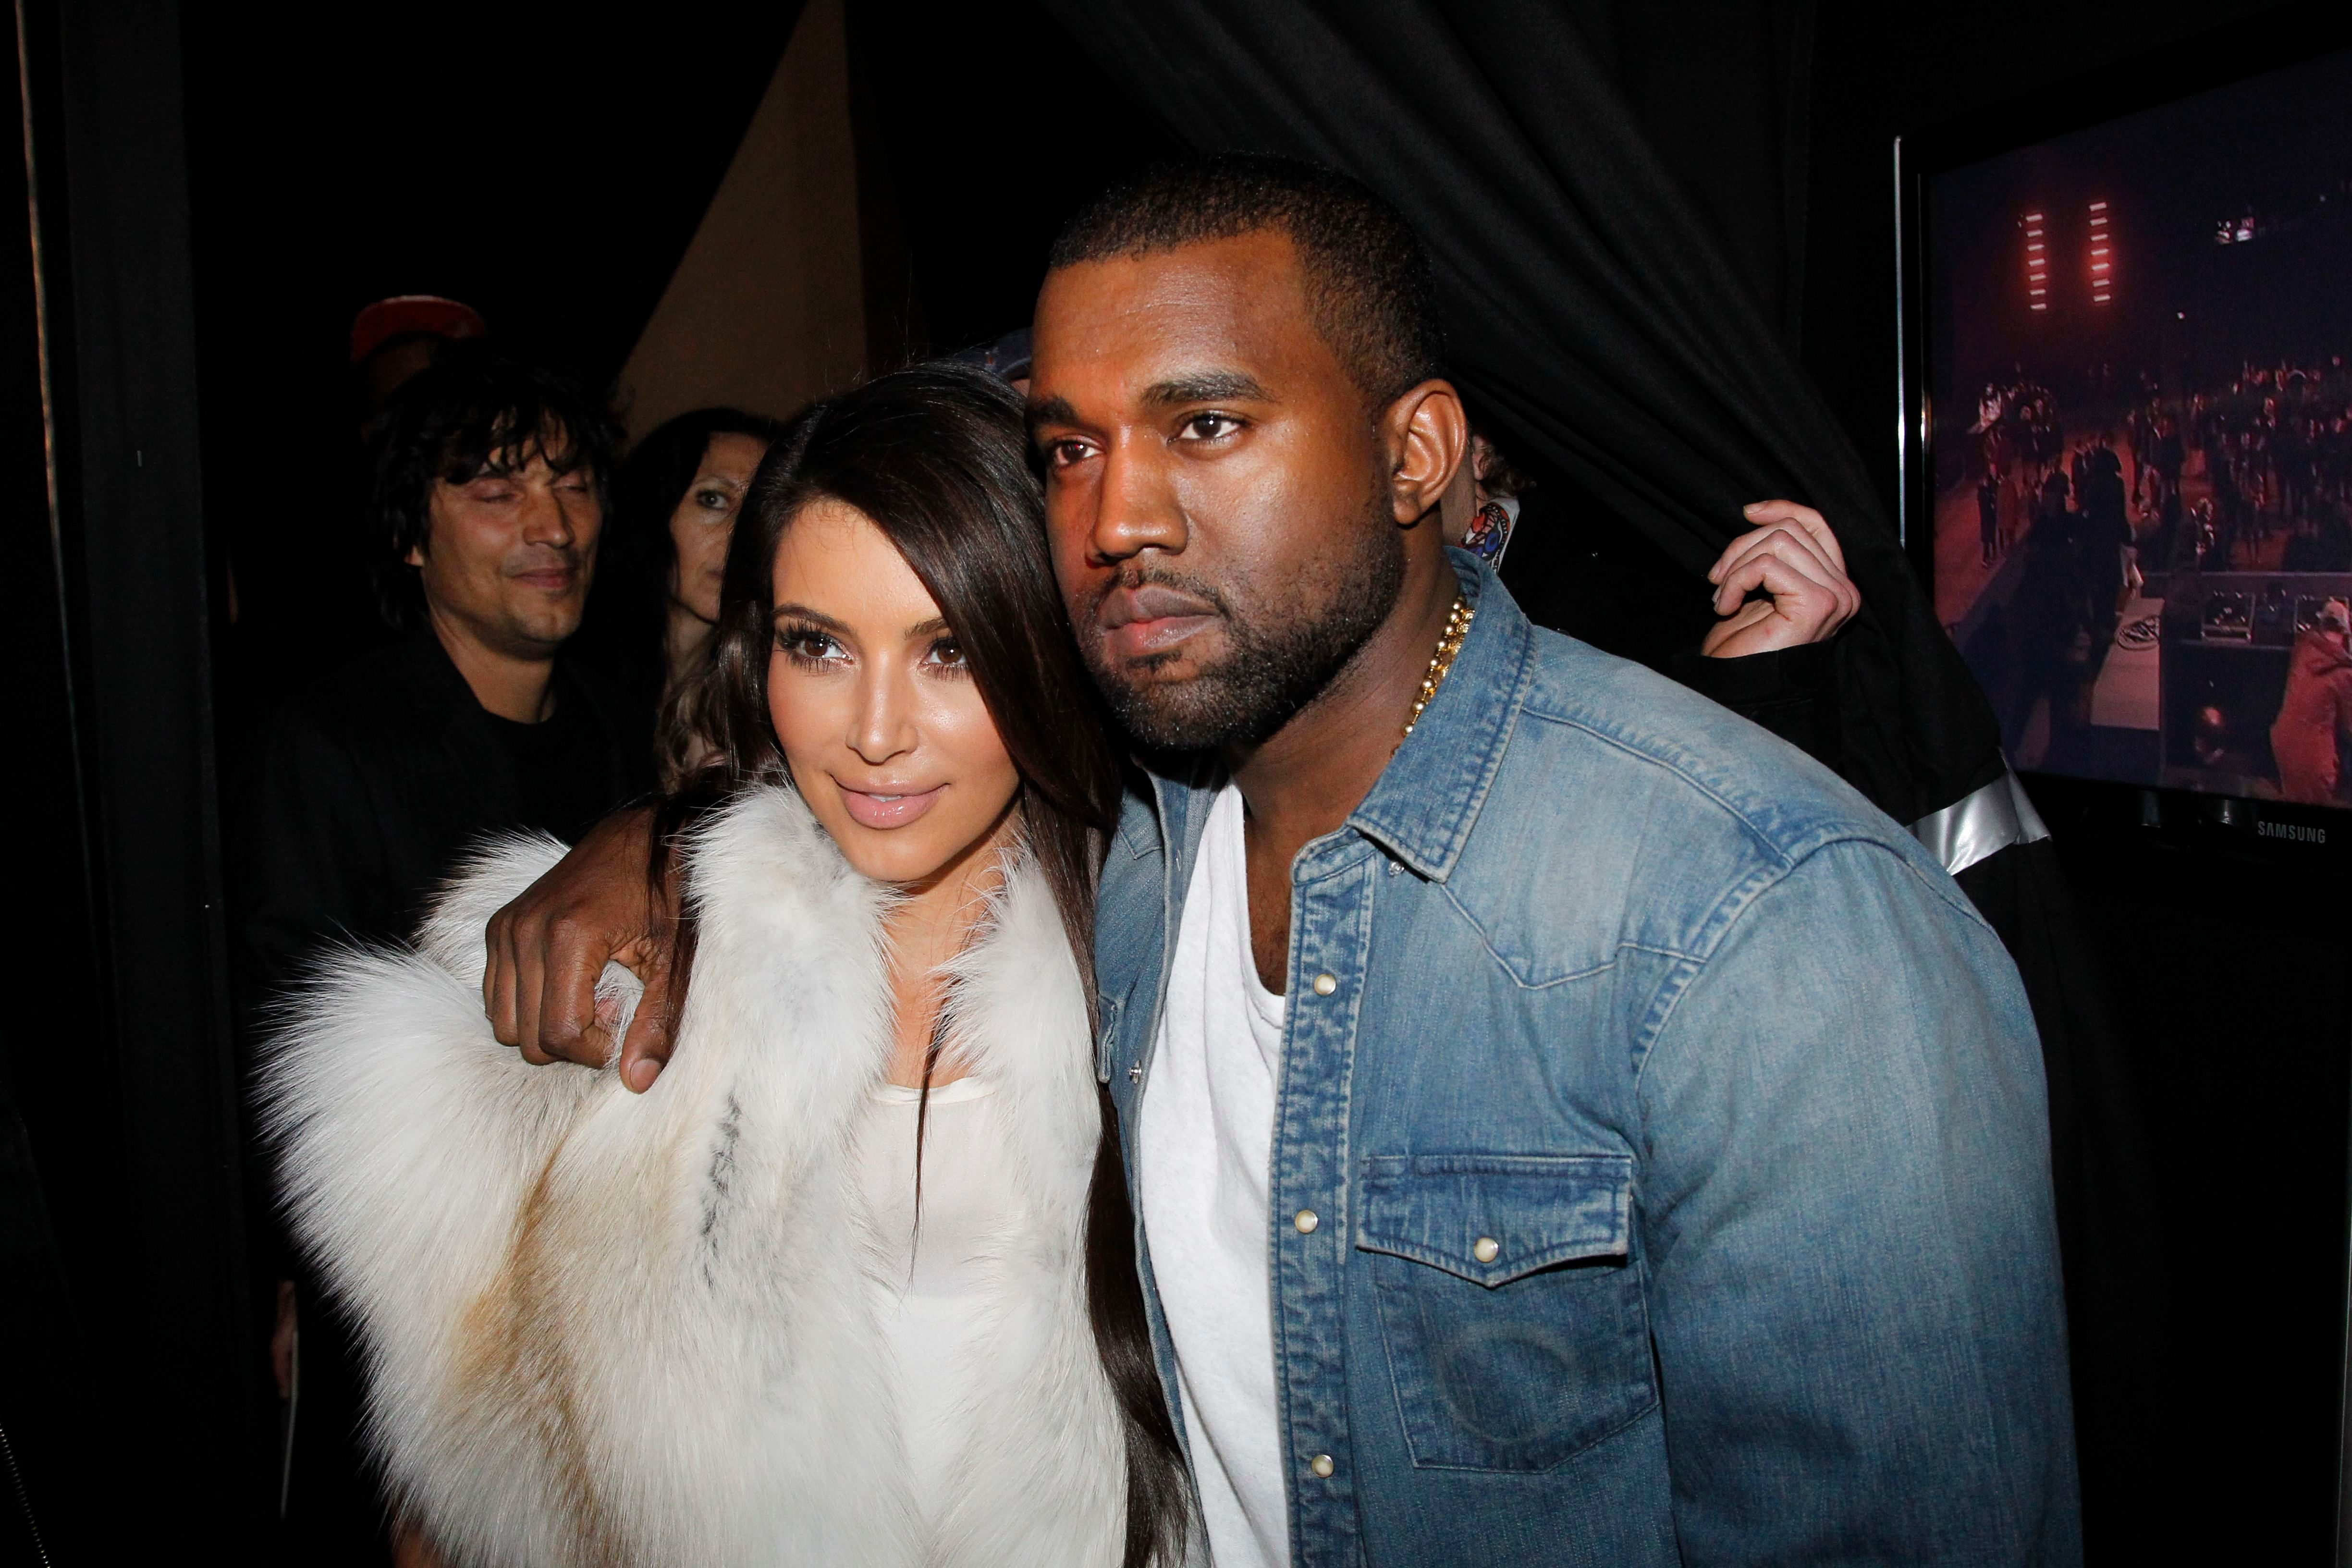 Kim Kardashian and Kanye West atthe Kanye West Ready-To-Wear Fall/Wintershow as part of Paris Fashion Weekon March 6, 2012, in Paris, France | Photo:Getty Images